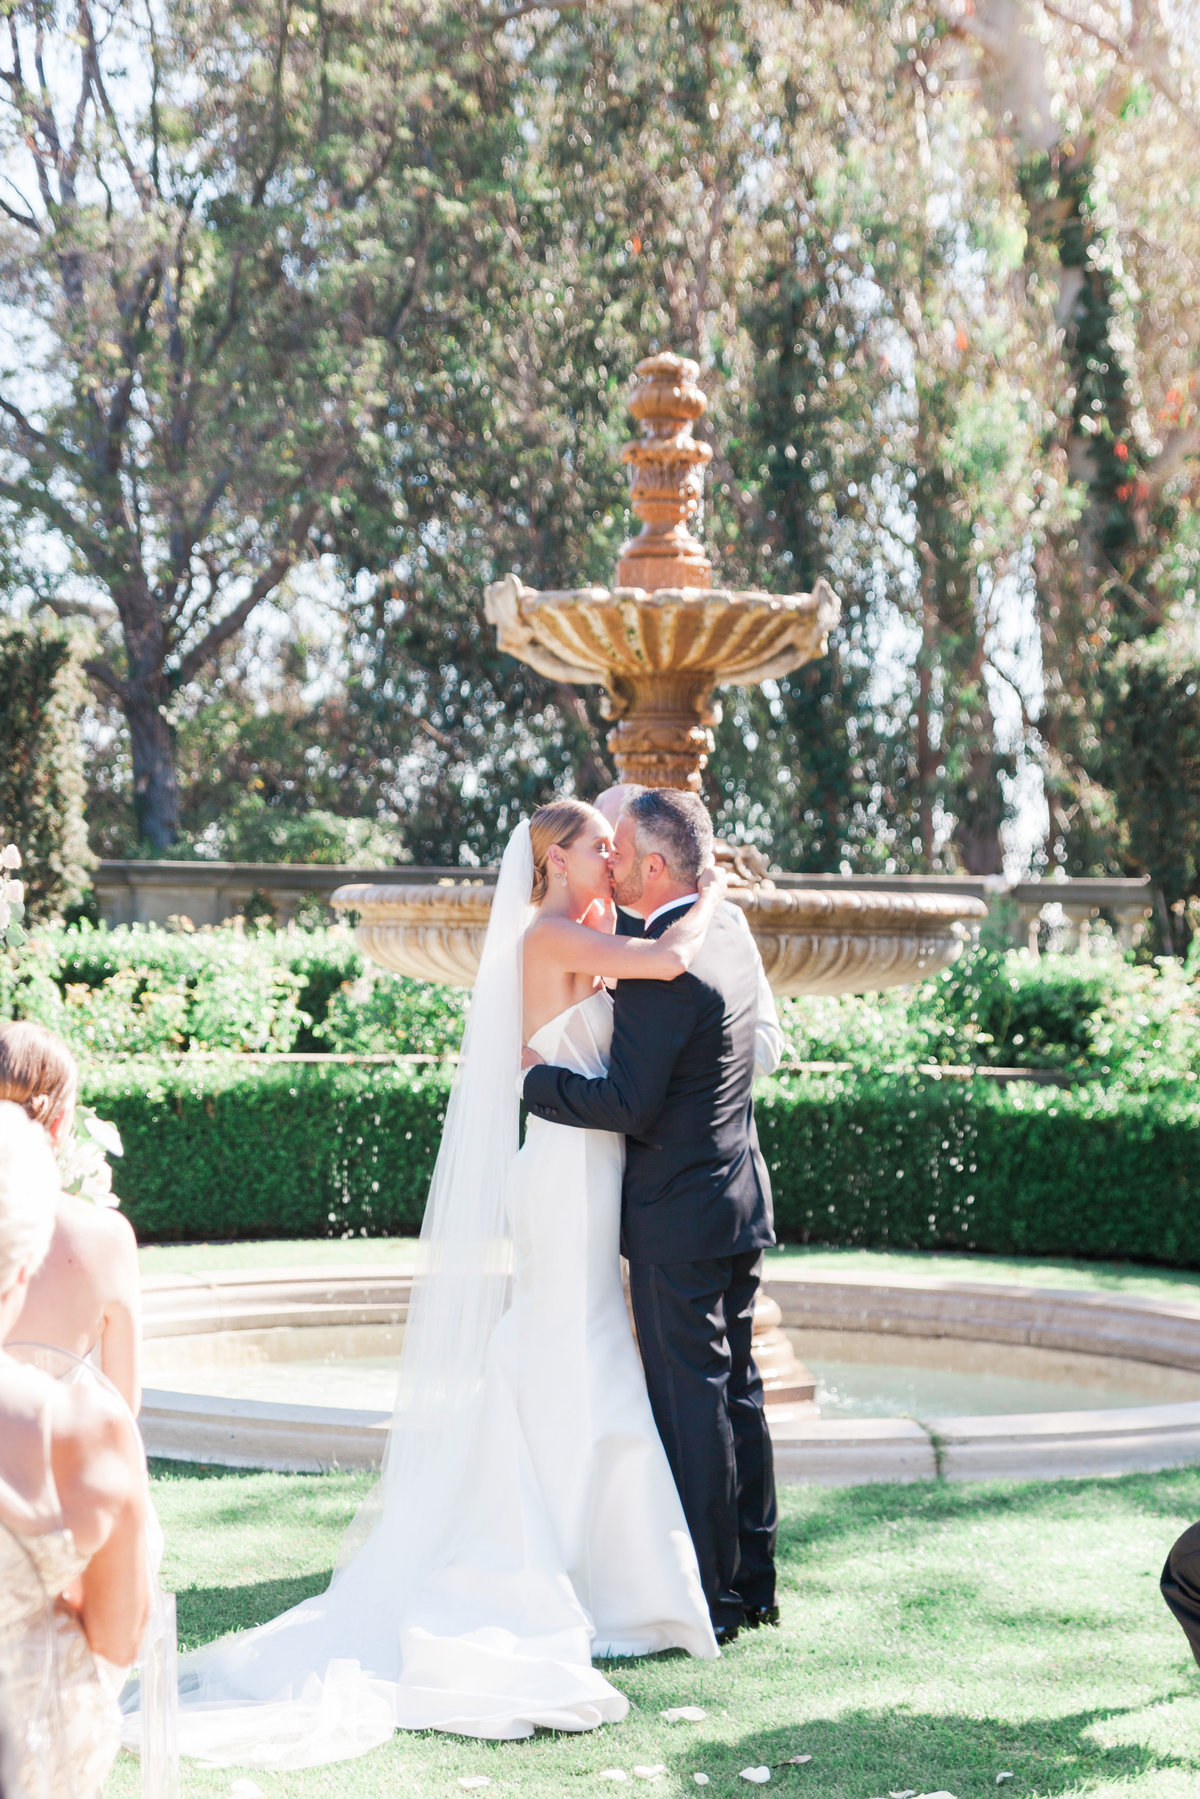 Intimate_Greystone_Mansion_Intimate_Black_Tie_Wedding_Valorie_Darling_Photography - 34 of 70